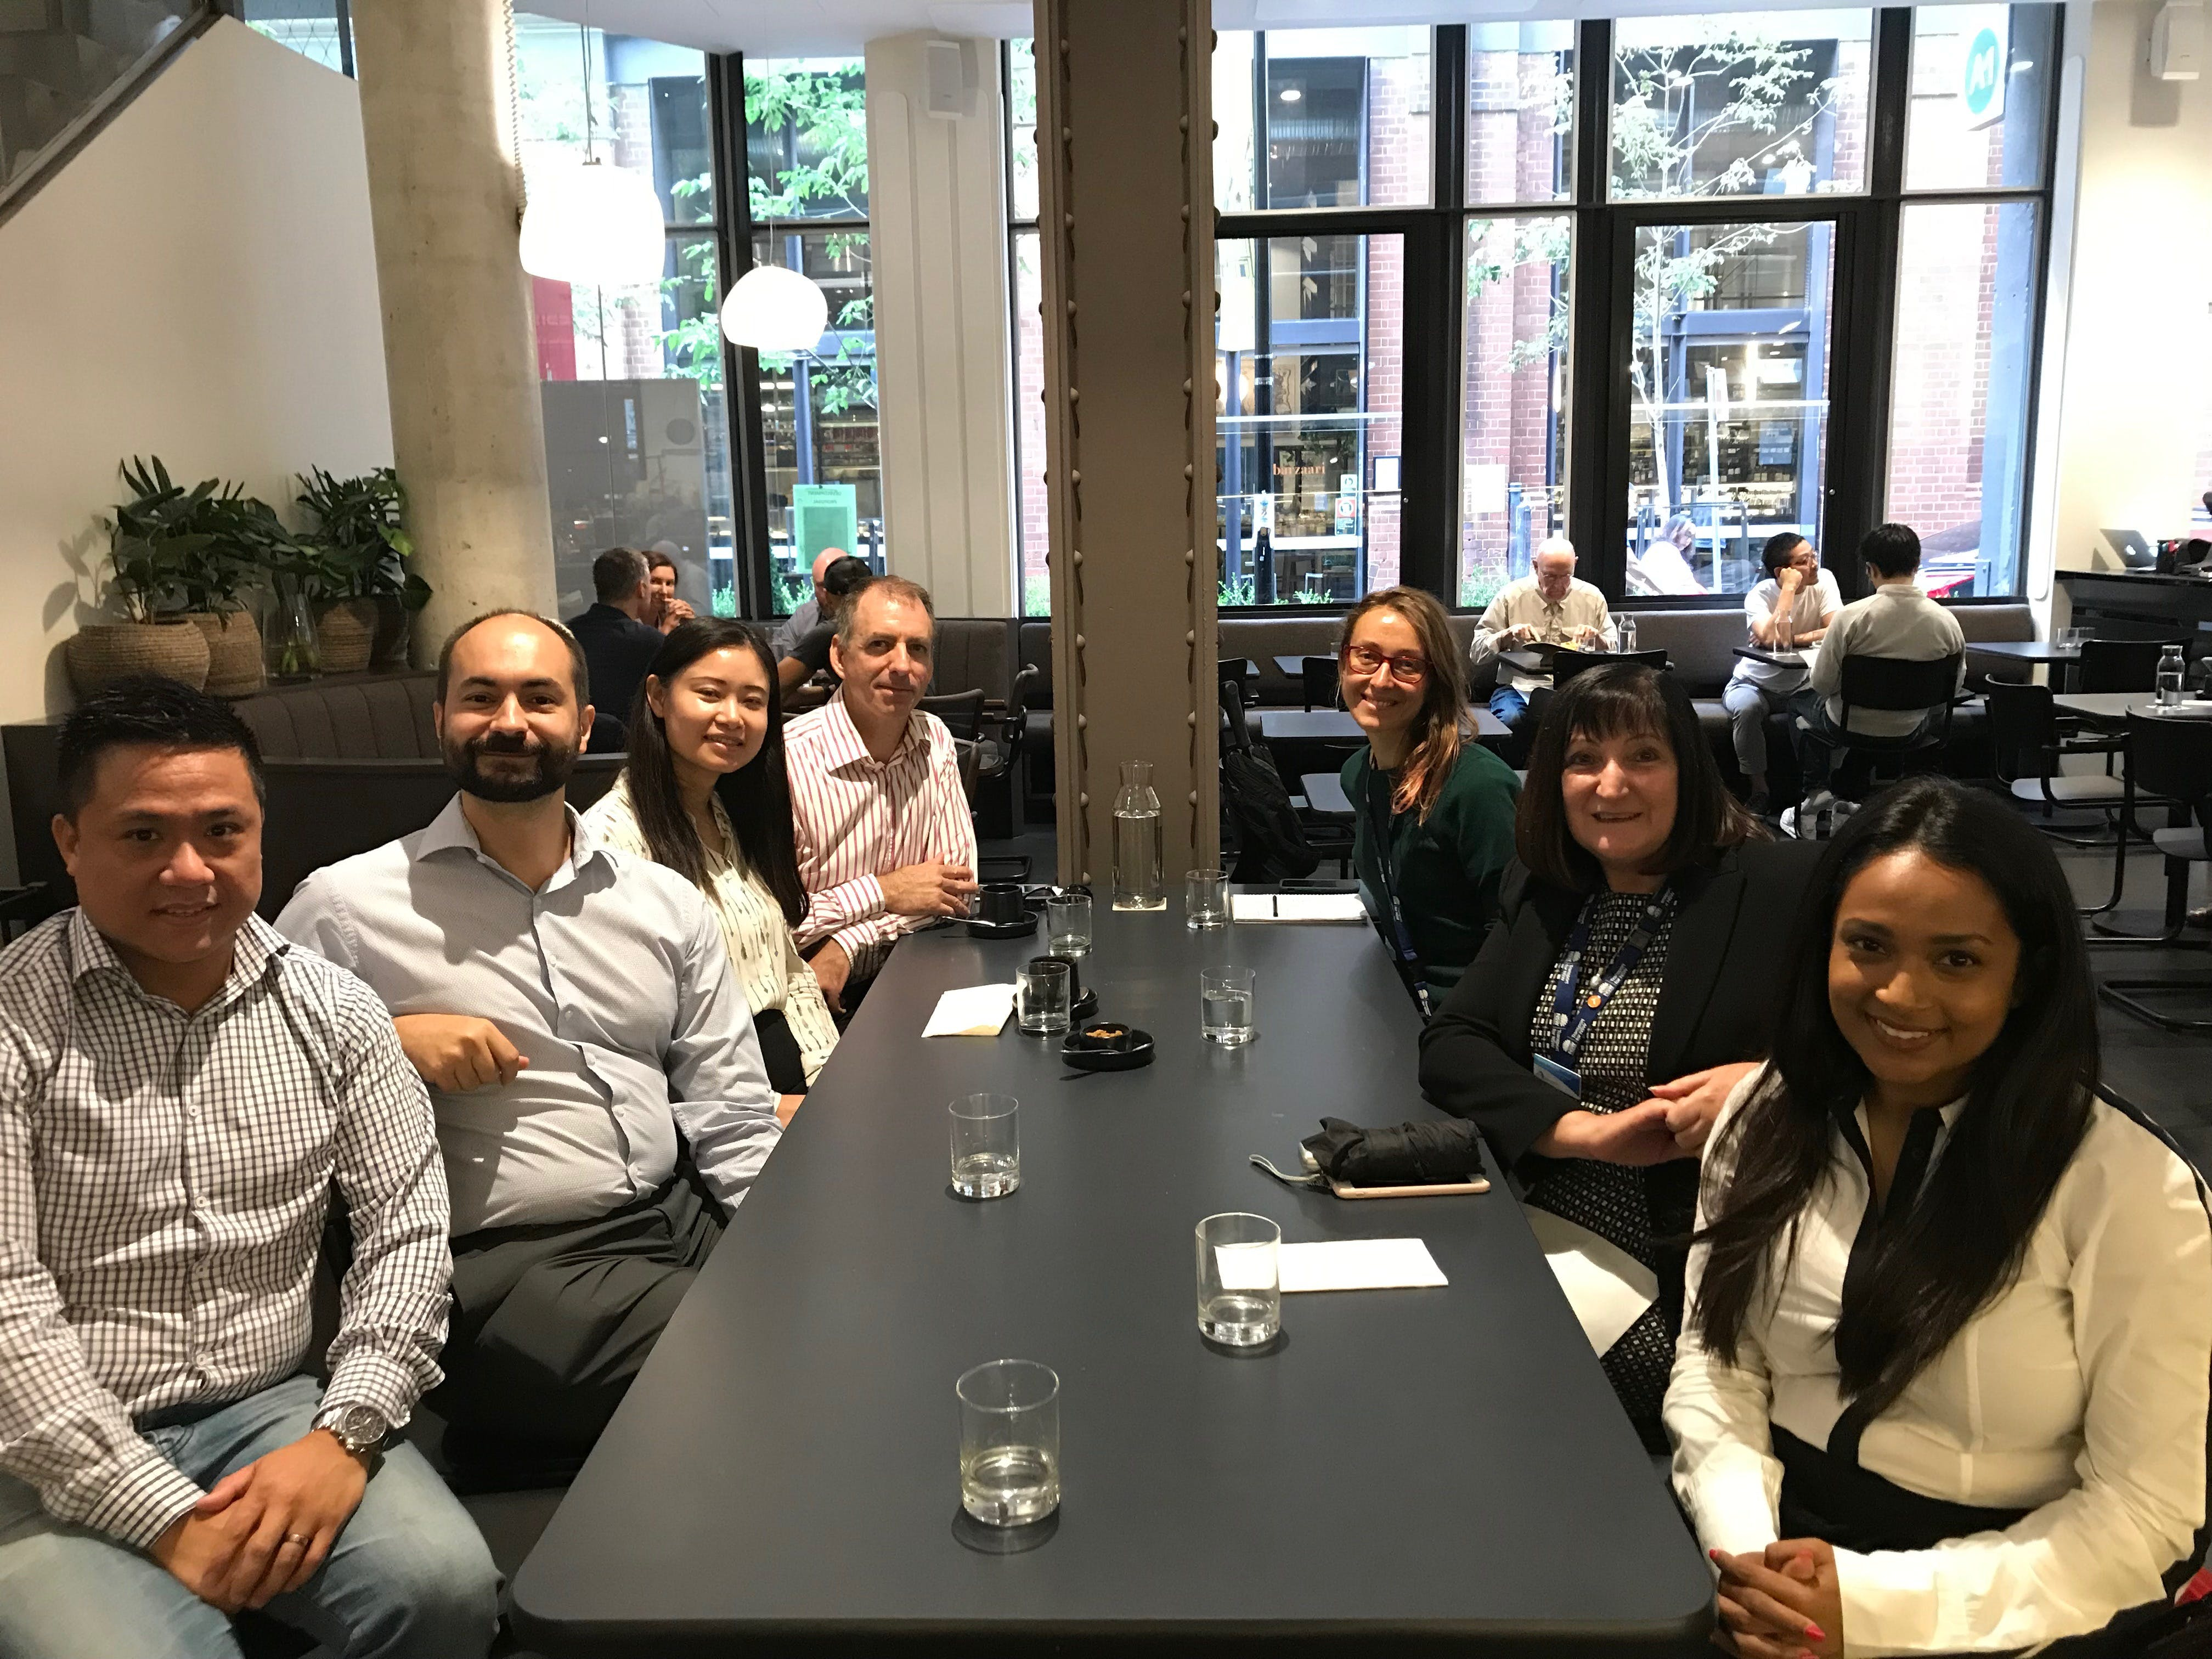 Breakfast with the Dep Sec initiative held for Corporate Services employees from Lee St and Pitt St offices